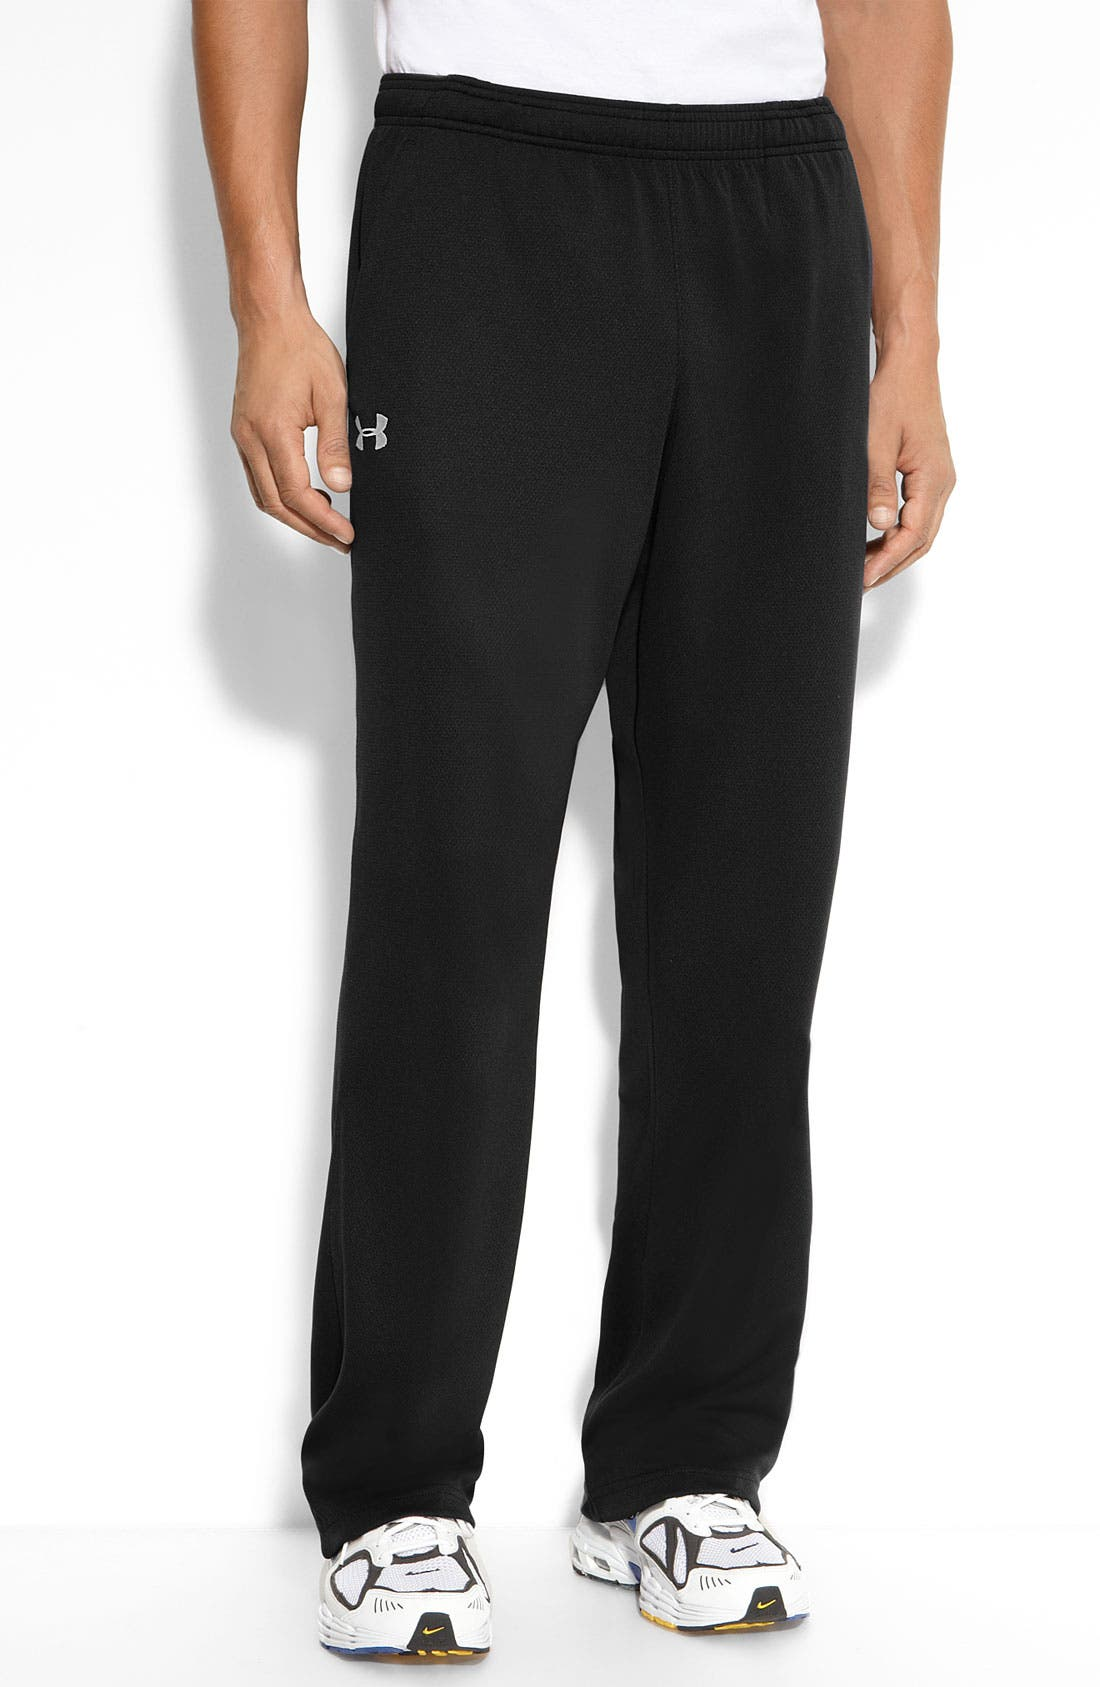 Main Image - Under Armour 'Flex' AllSeasonGear® Mesh Pants